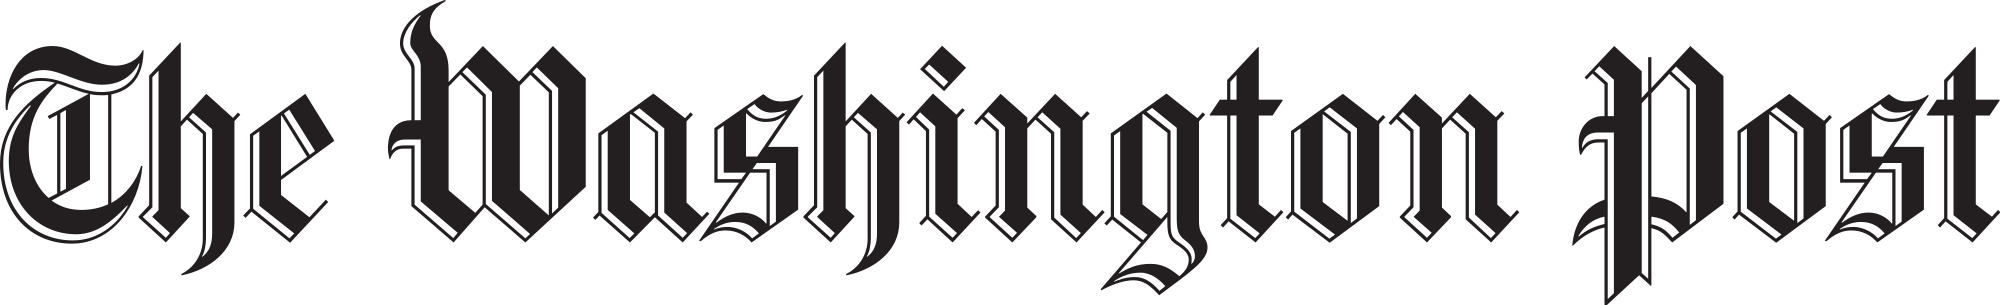 the washington press logo.png